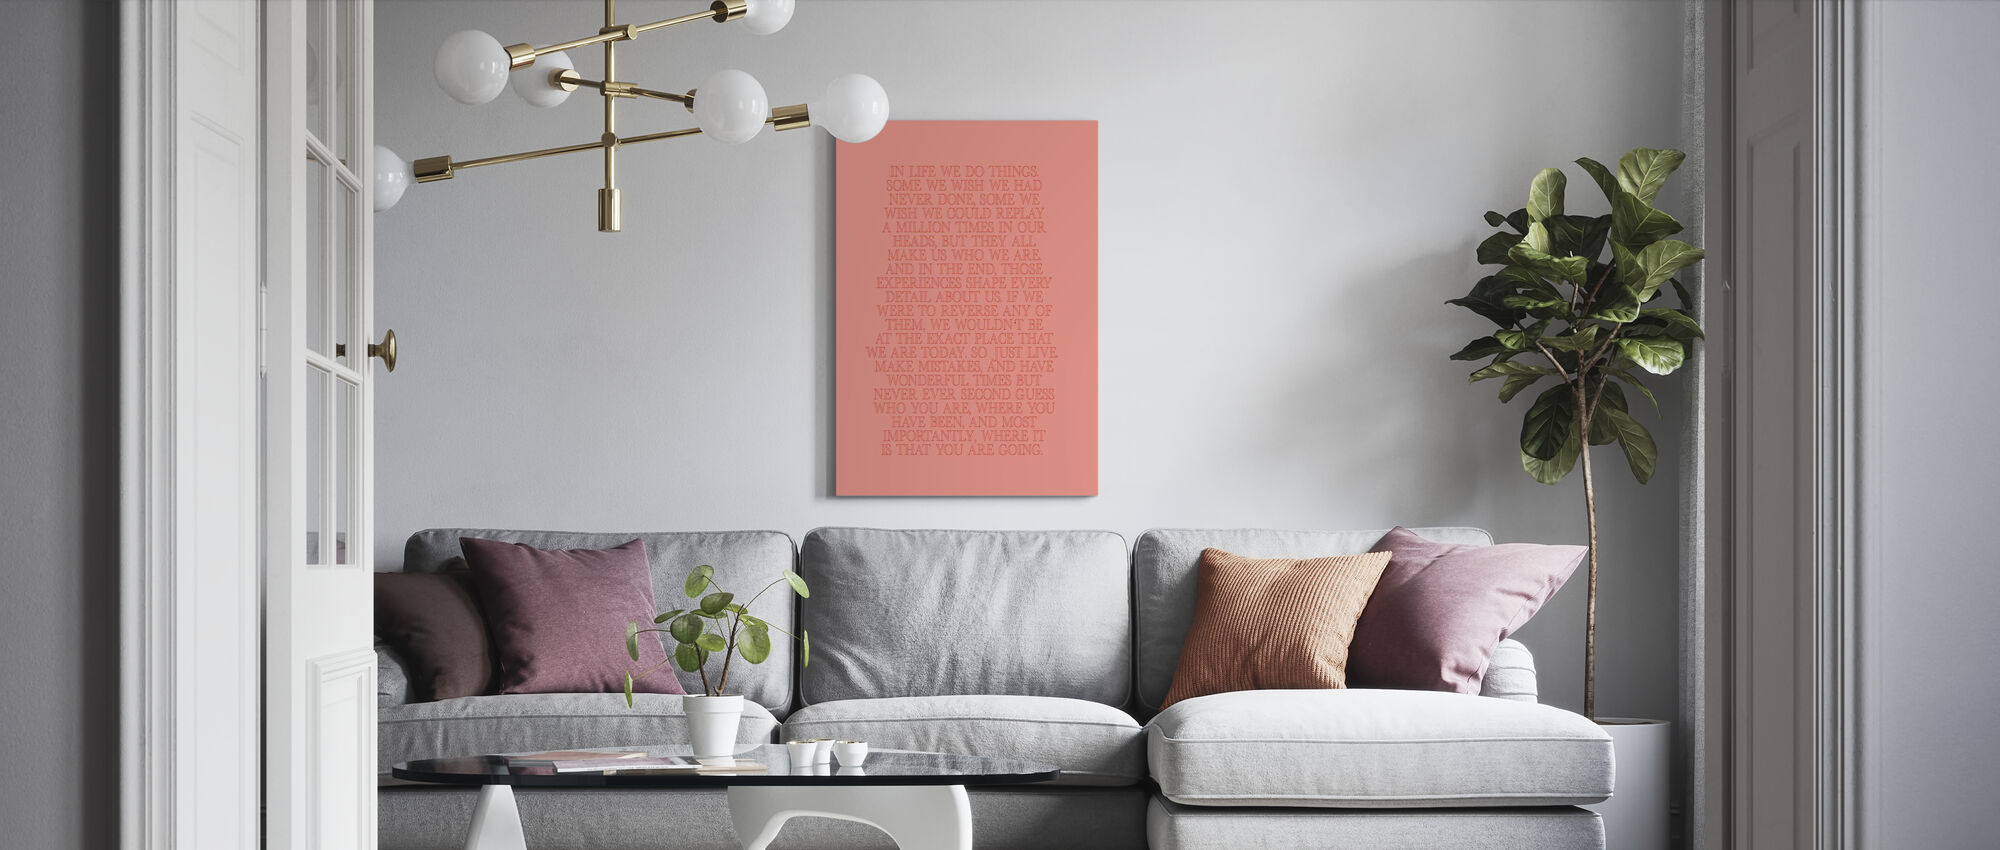 In Life III - Canvas print - Living Room